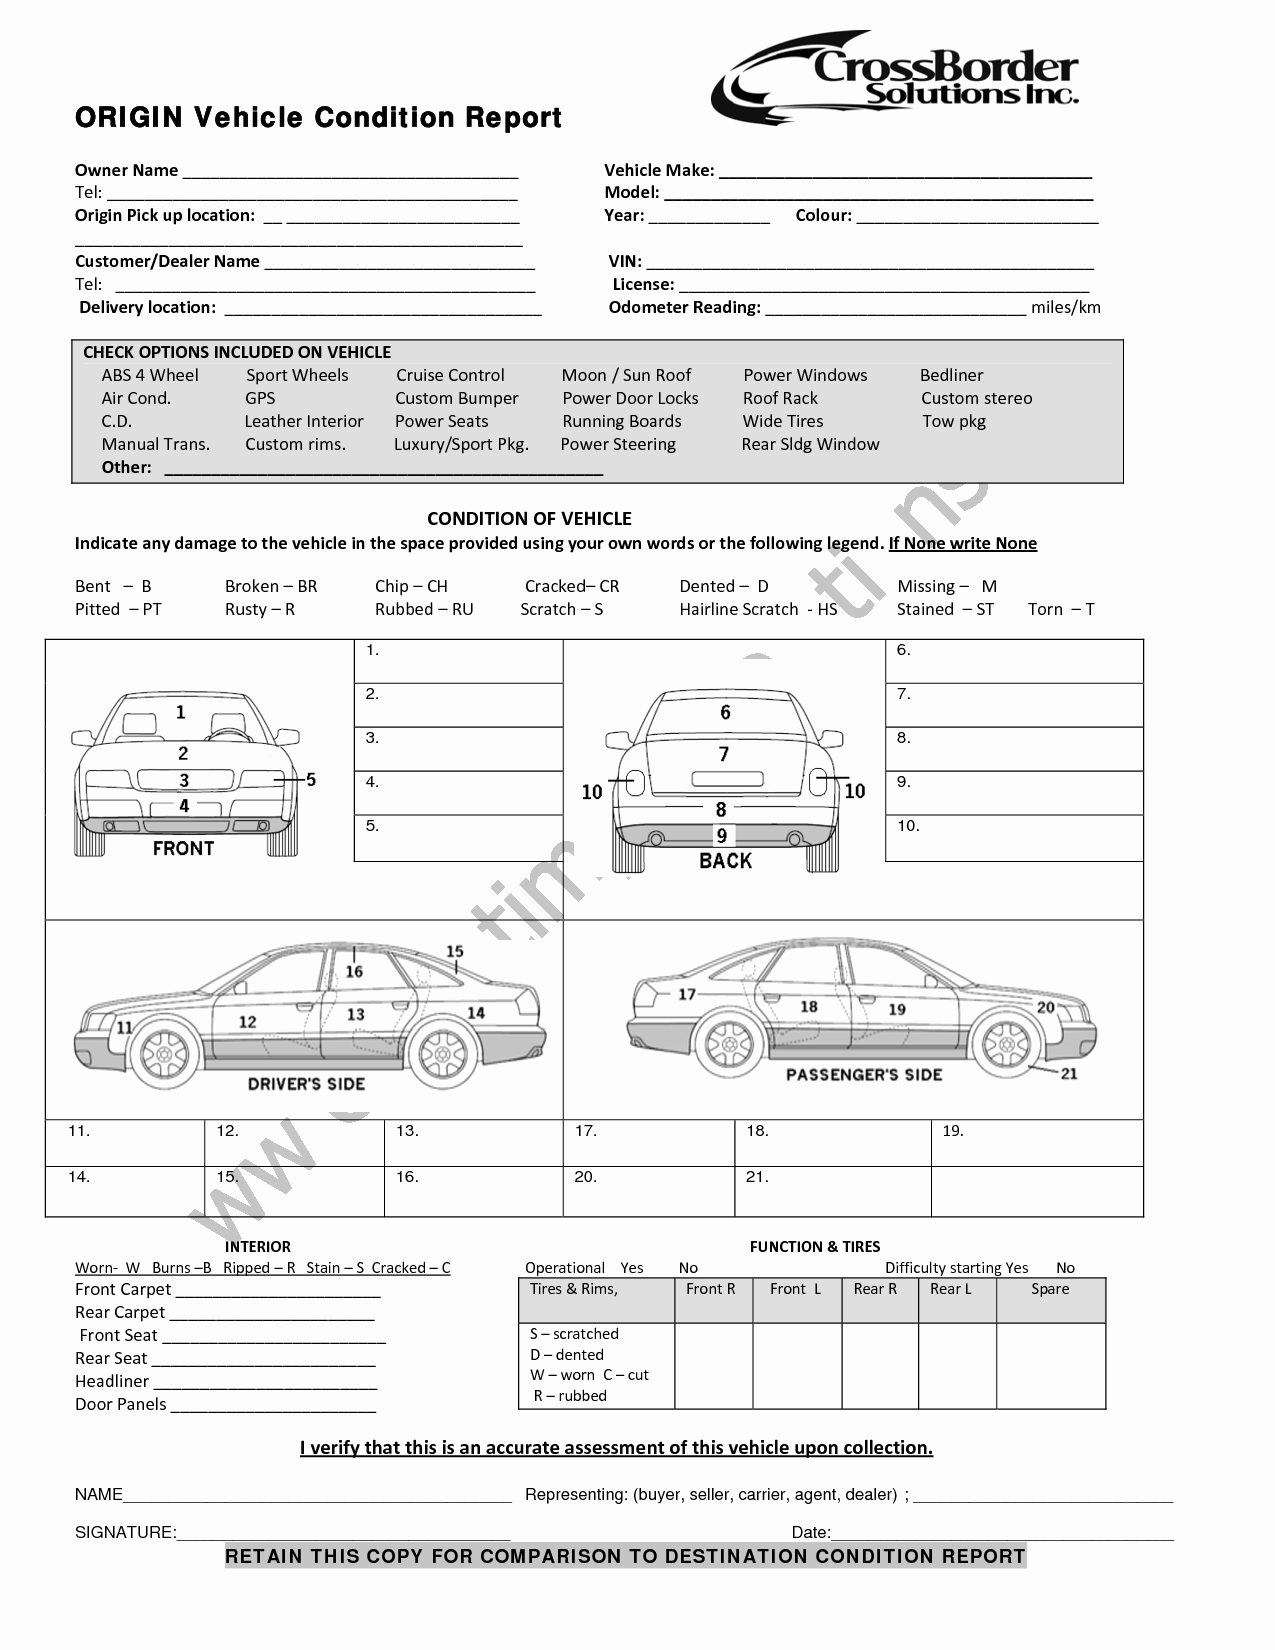 Automotive Inspection Checklist Template Fresh Vehicle Condition Report Templates Word Excel Samples